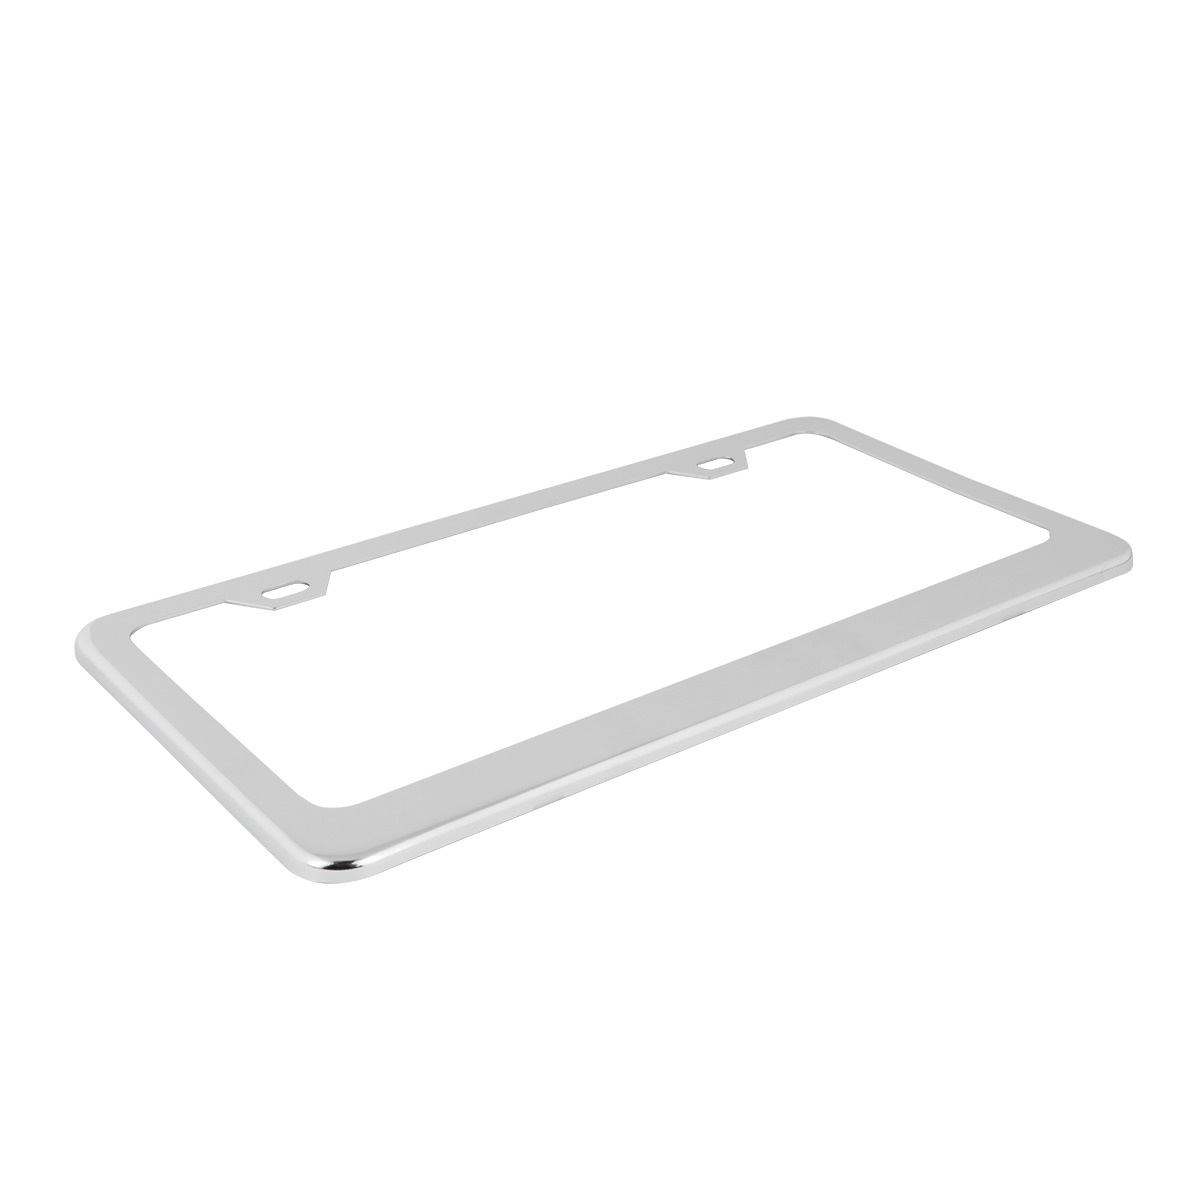 60440 Plain Chrome Plated Steel 2 Hole License Plate Frame - Top View